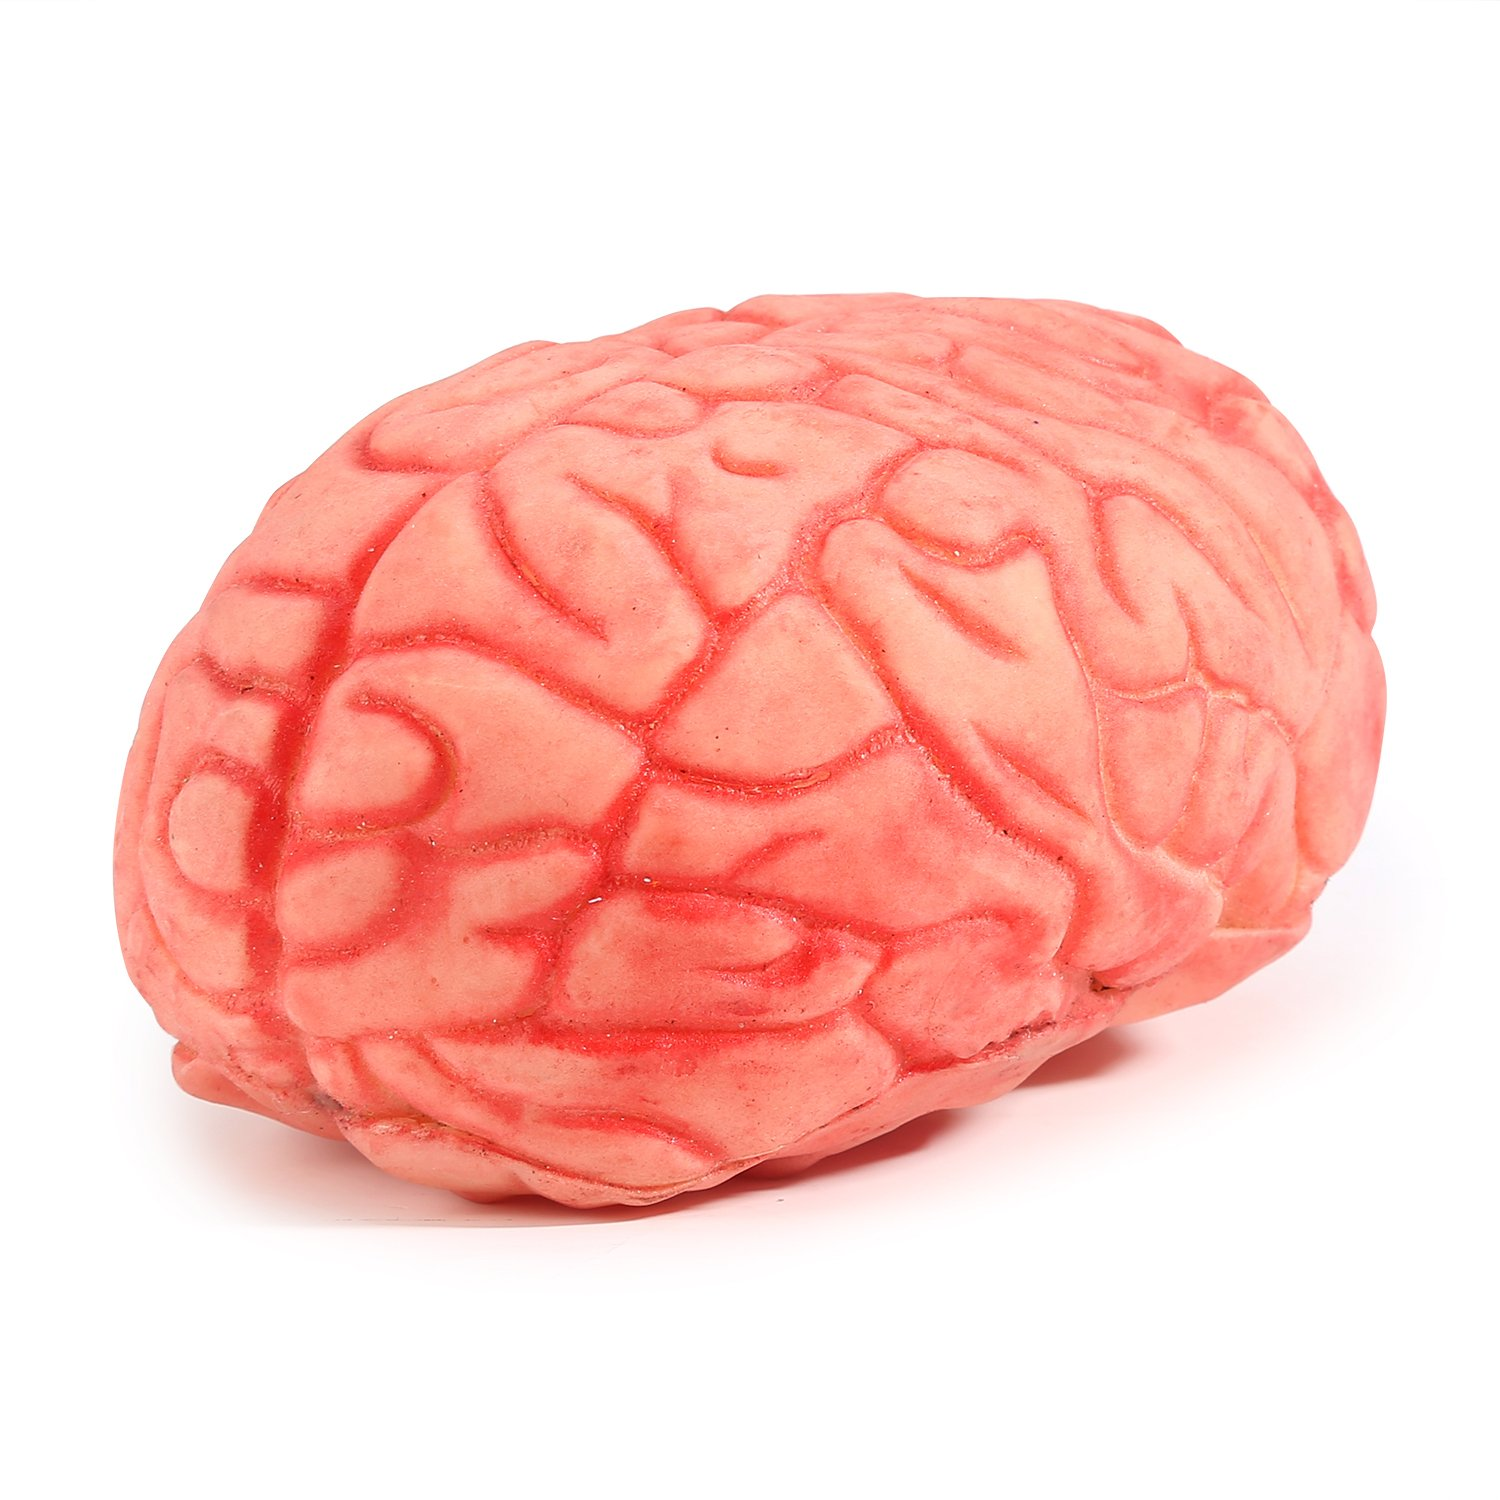 ONEDONE Soft Bloody Brain Mold Horror Halloween Prop by ONEDONE